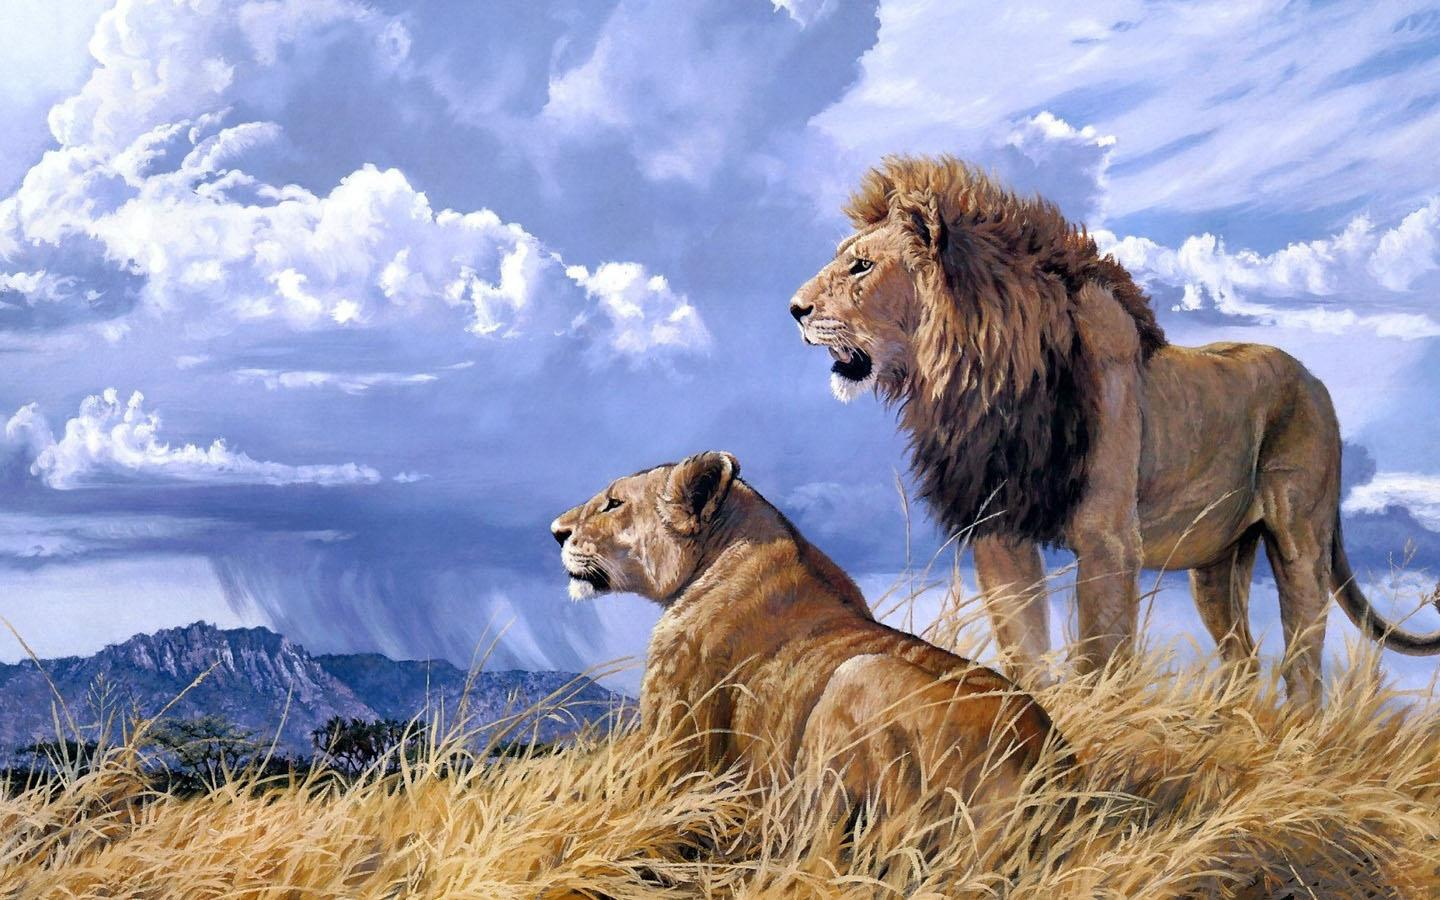 Hd wallpaper download app - If You Are A Lion Lovers Do Not Miss This Lion Hd Wallpaper Internet Network Permission For Google Advertising App Description